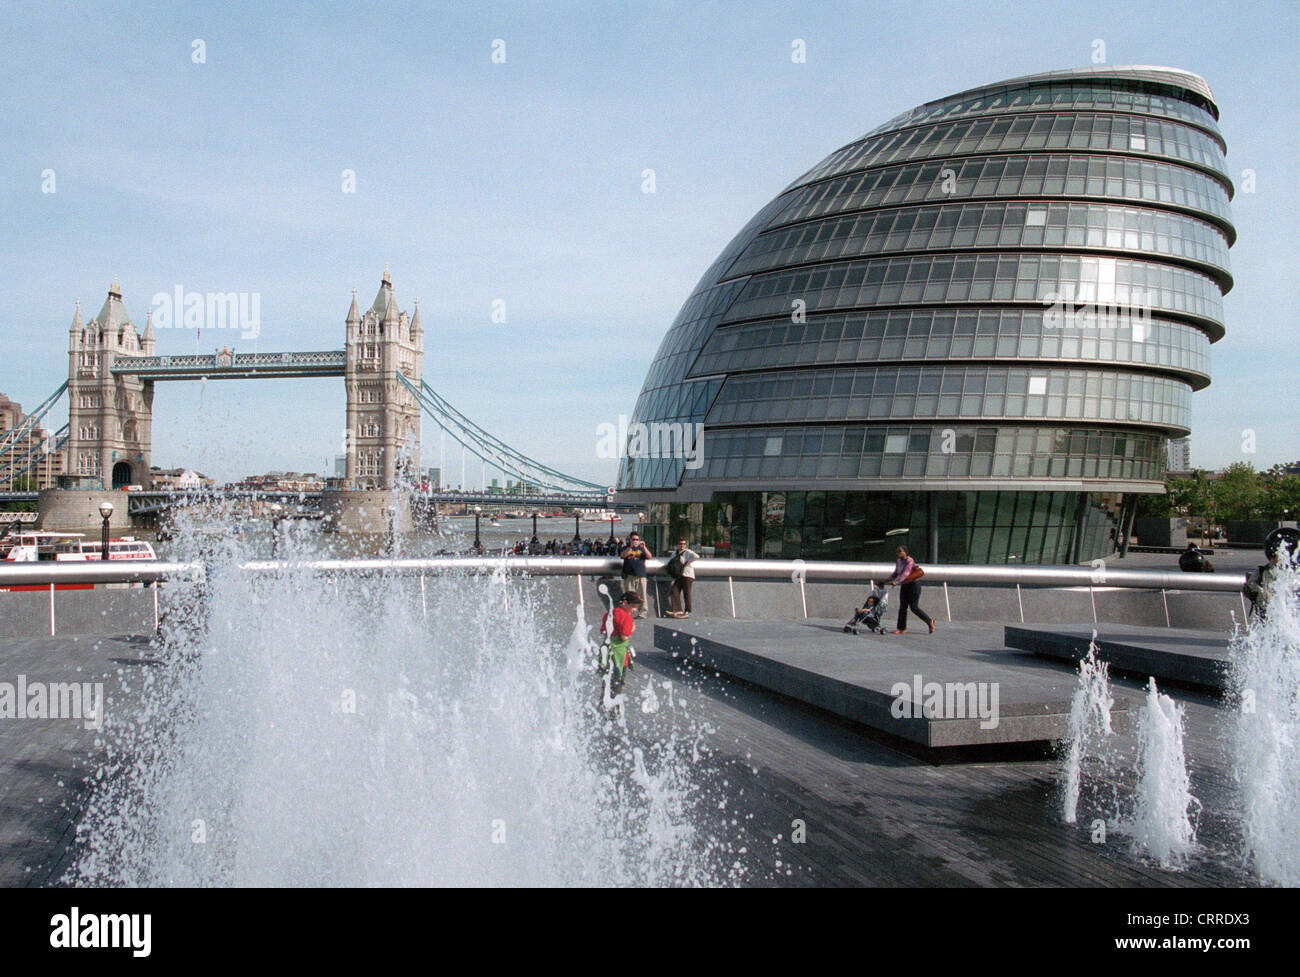 The new City Hall of London and Tower Bridge - Stock Image